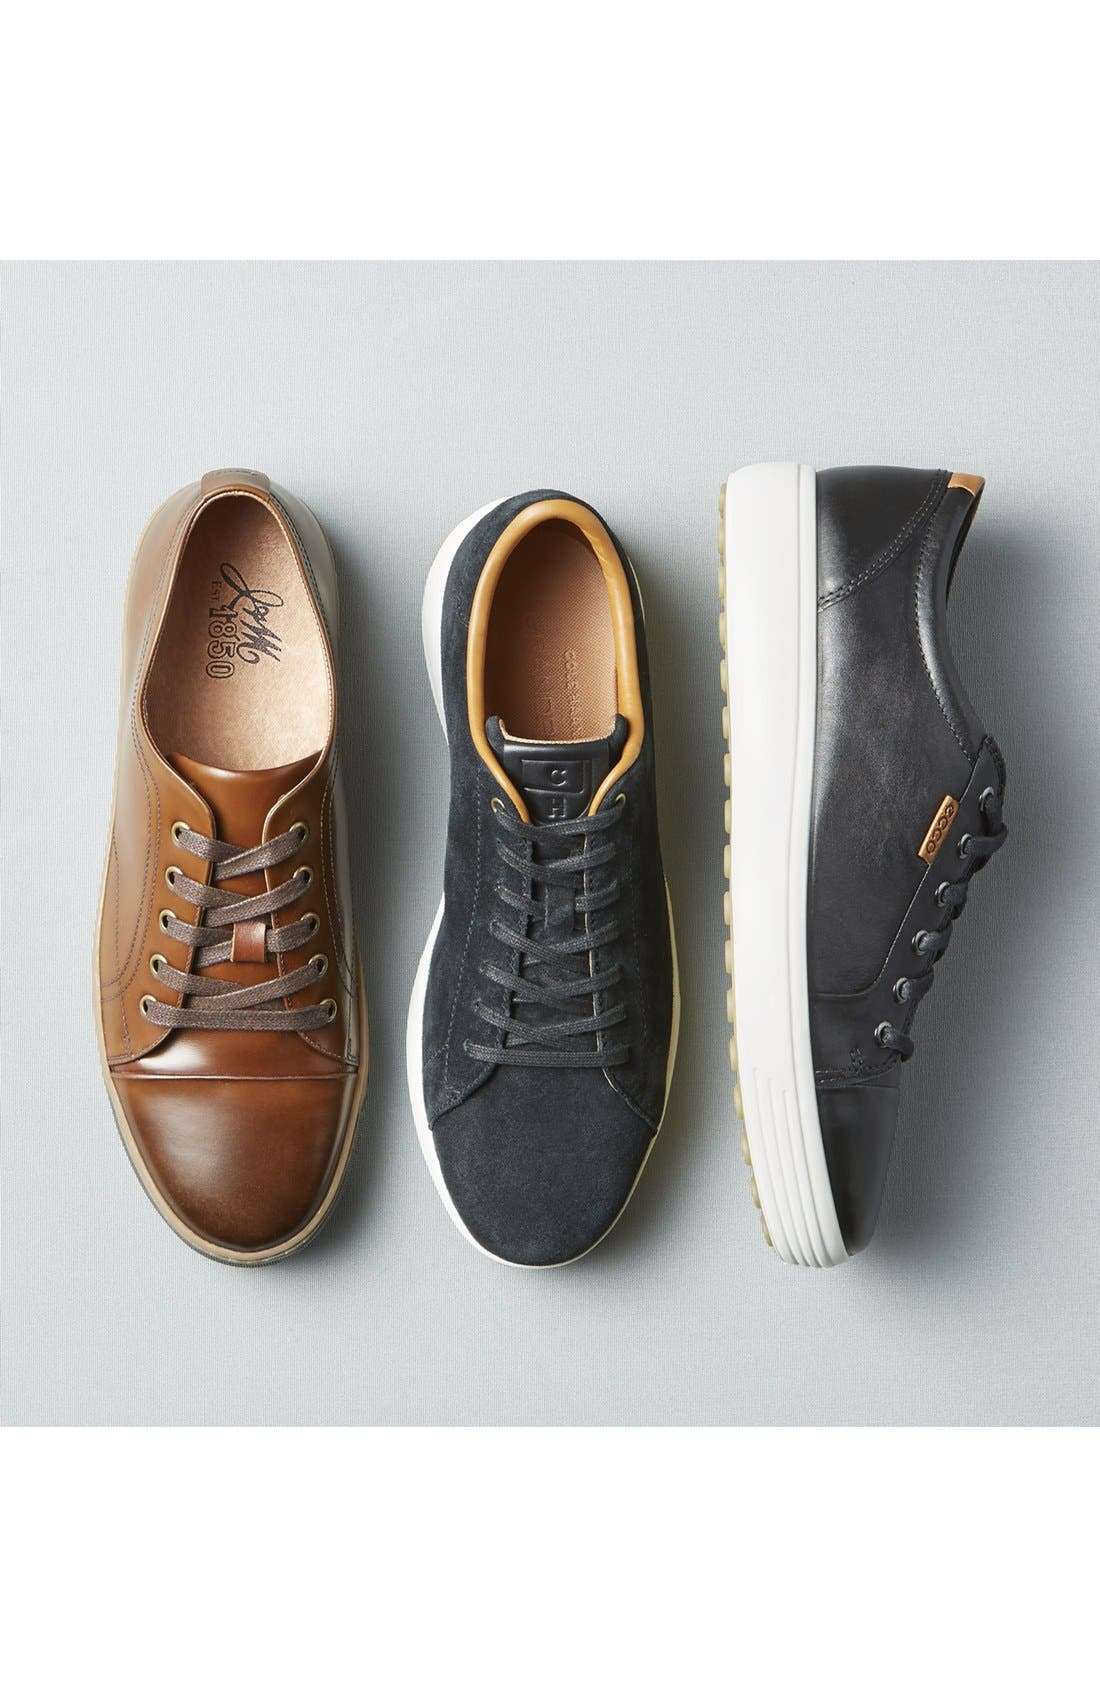 Soft VII Lace-Up Sneaker,                         Main,                         color, LICORICE LEATHER